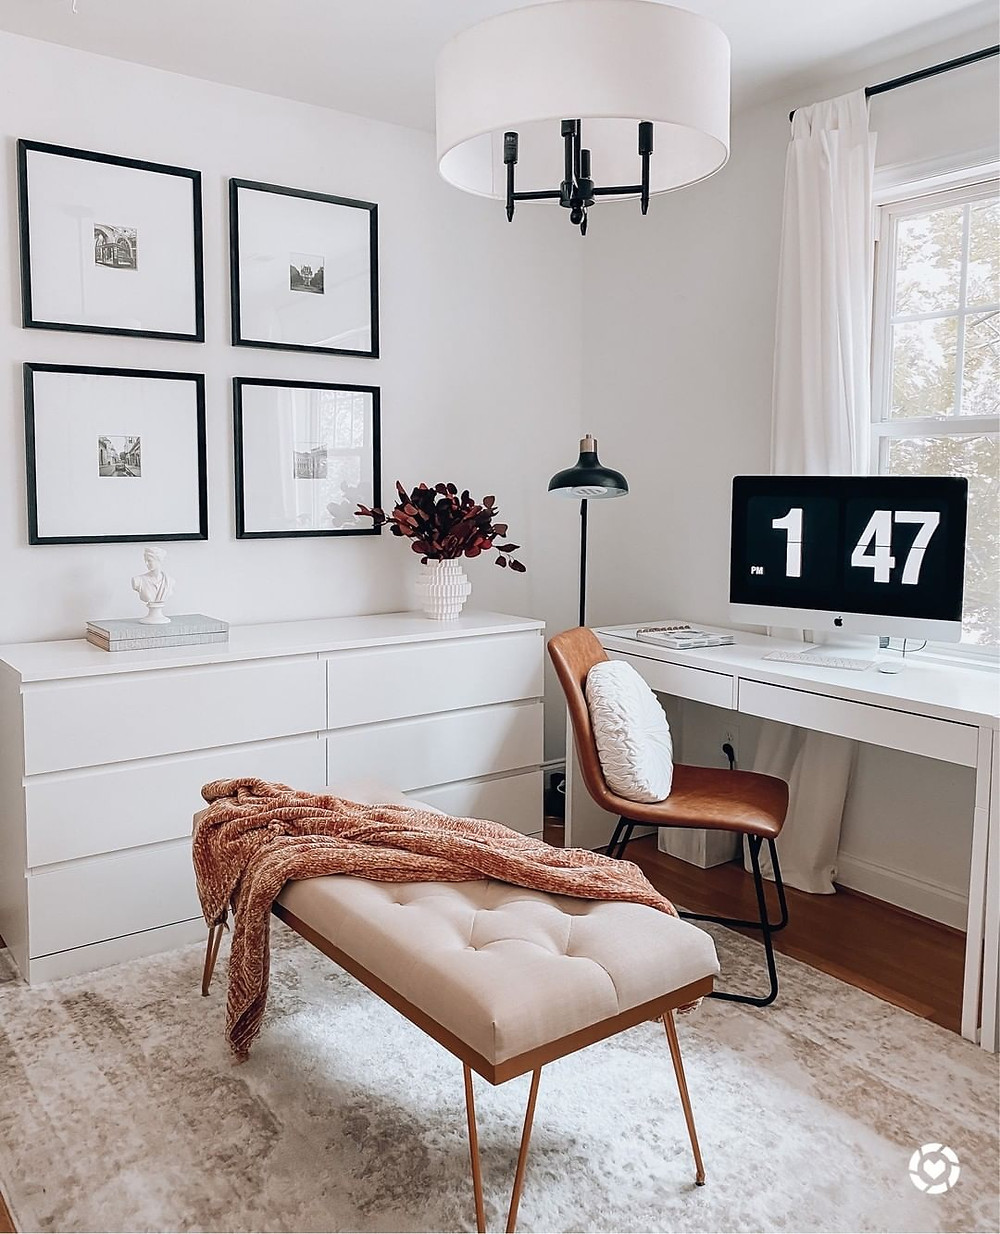 Simple Scandinavian home office setup with apple computer and decorative bench